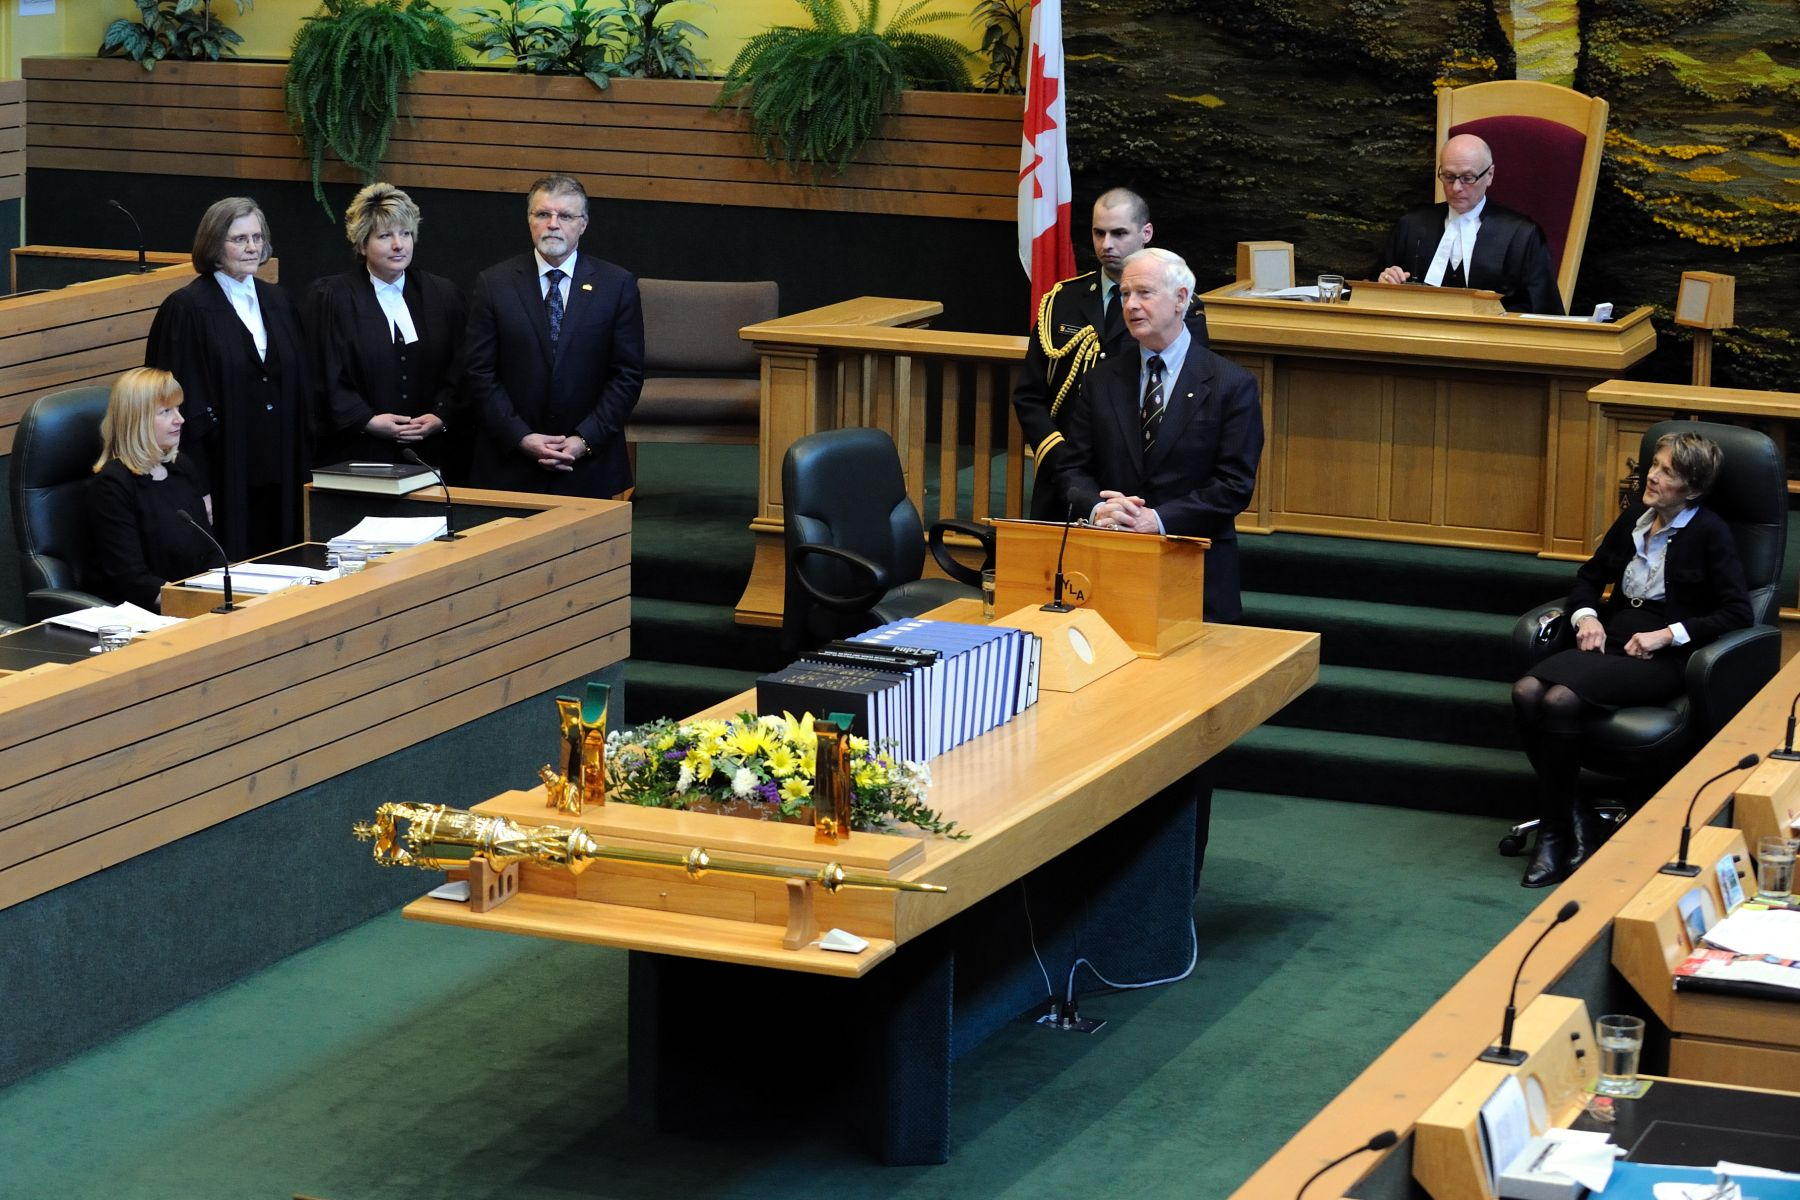 His Excellency met with members of the Legislative Assembly and delivered a speech.